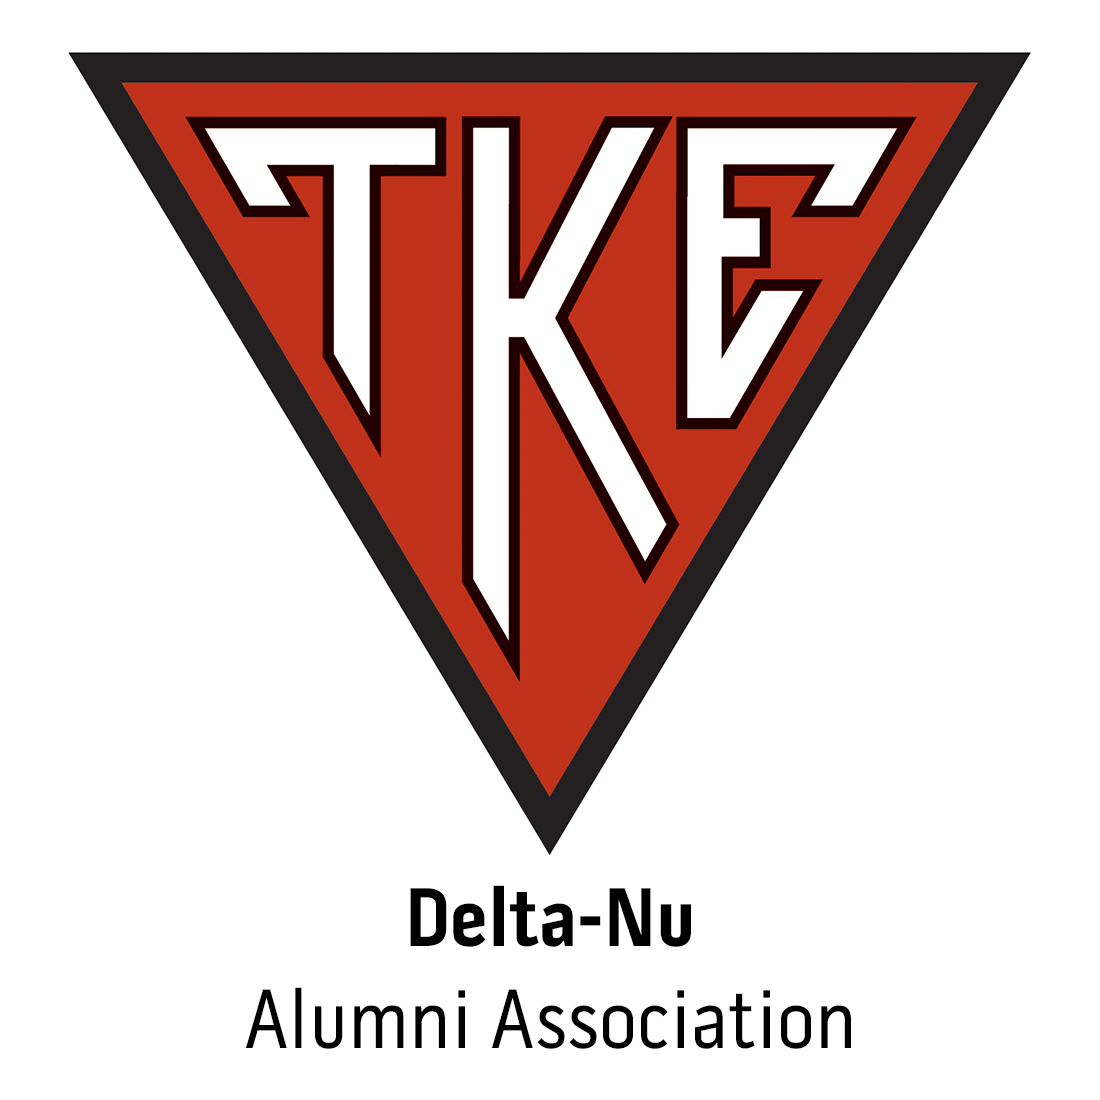 Delta-Nu Alumni Association at Northwest Missouri State University